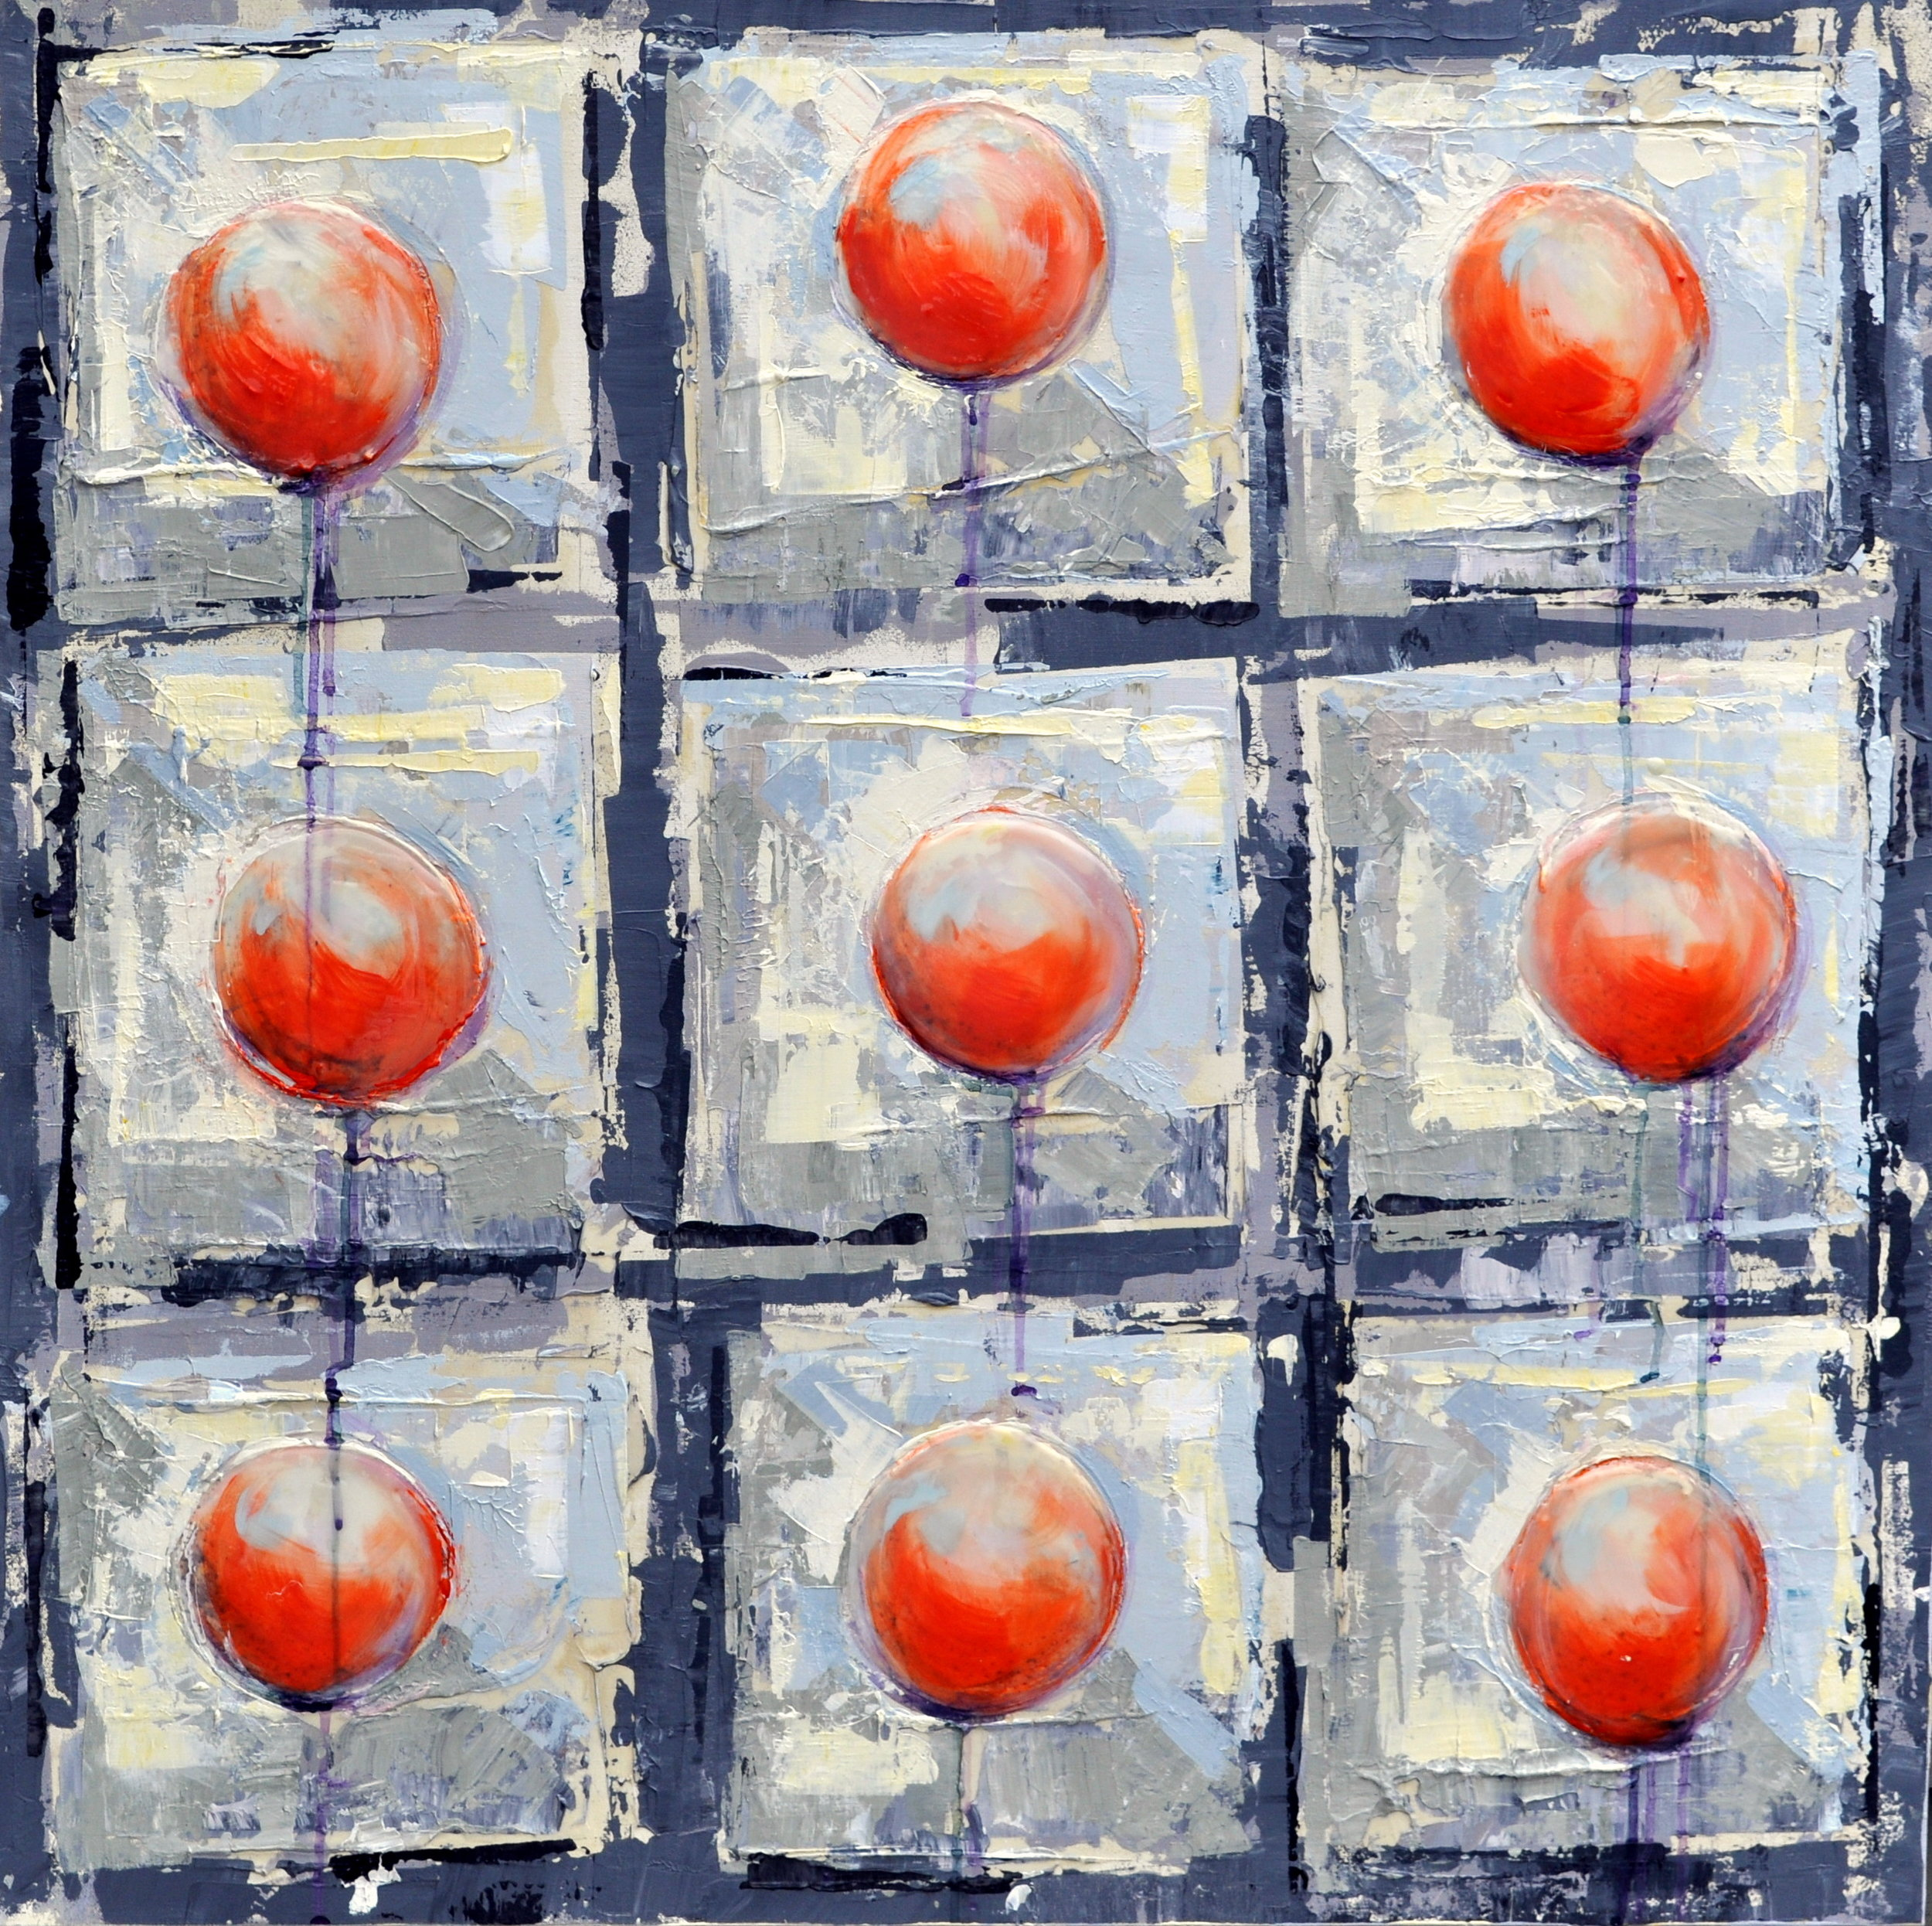 Available Painting: 9 Red Balloons VIII, Acrylic on Canvas, 36x36 inches